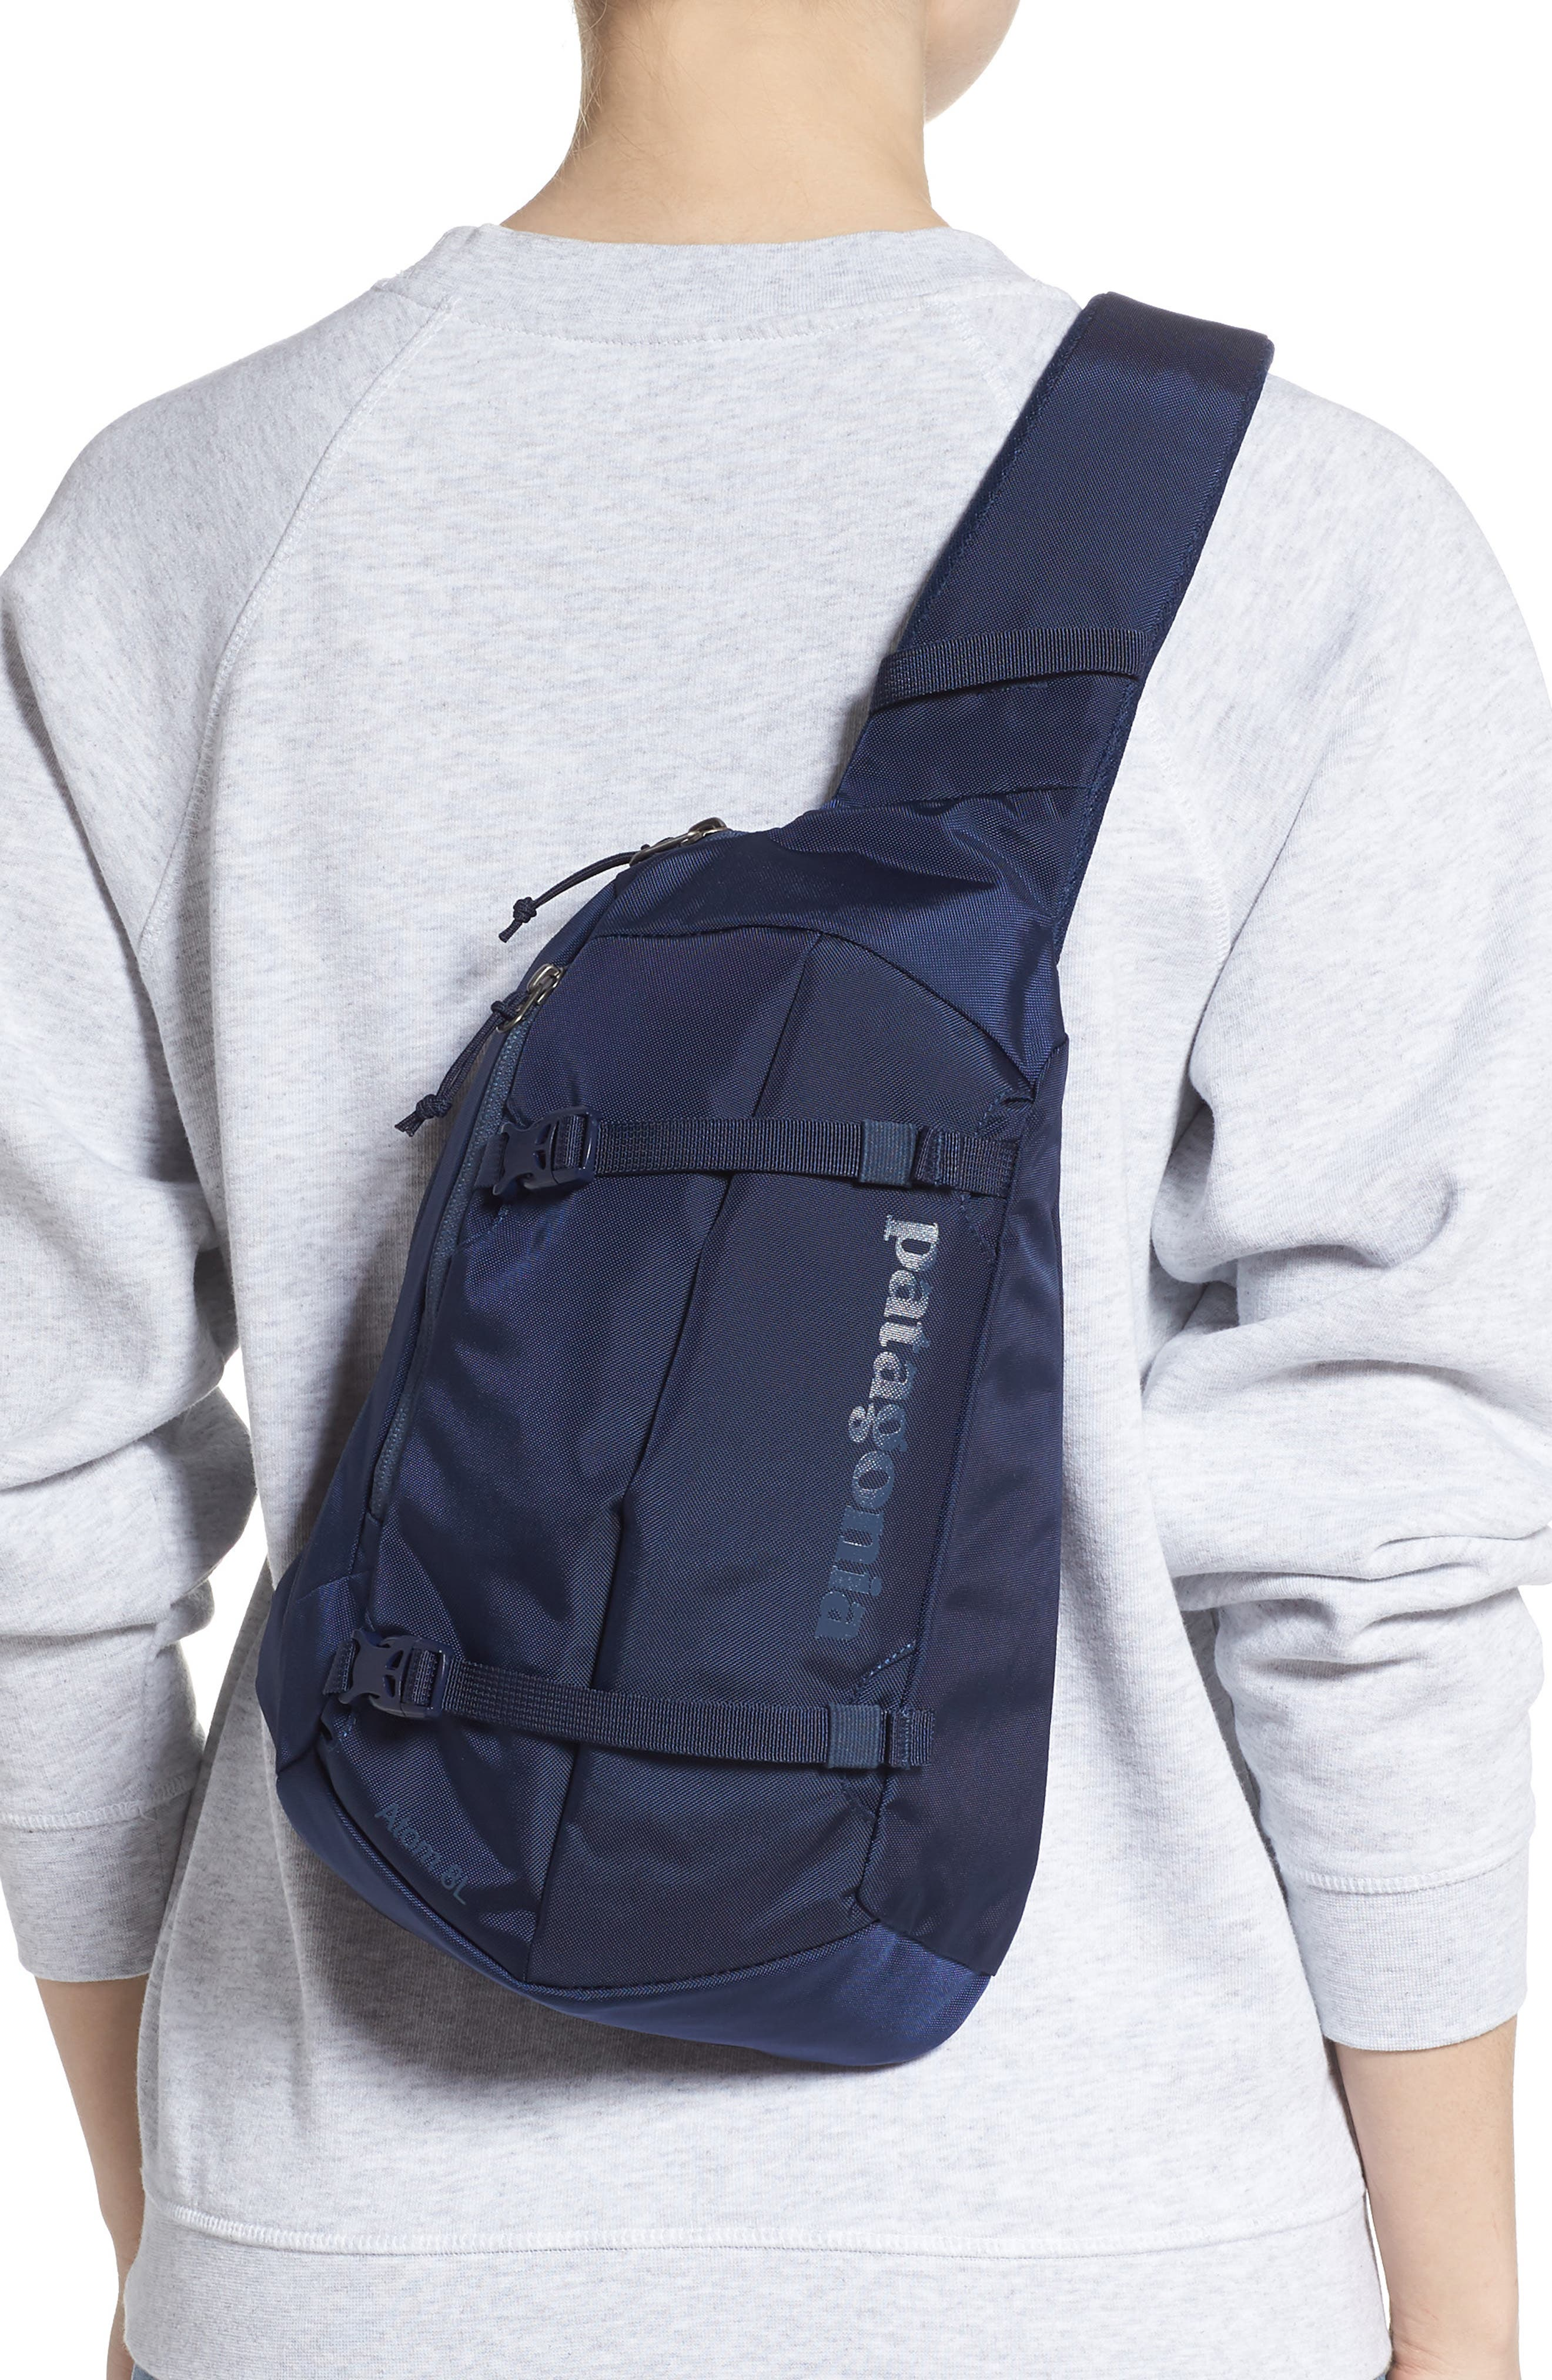 PATAGONIA, Atom 8L Sling Backpack, Alternate thumbnail 2, color, CLASSIC NAVY W/ NAVY